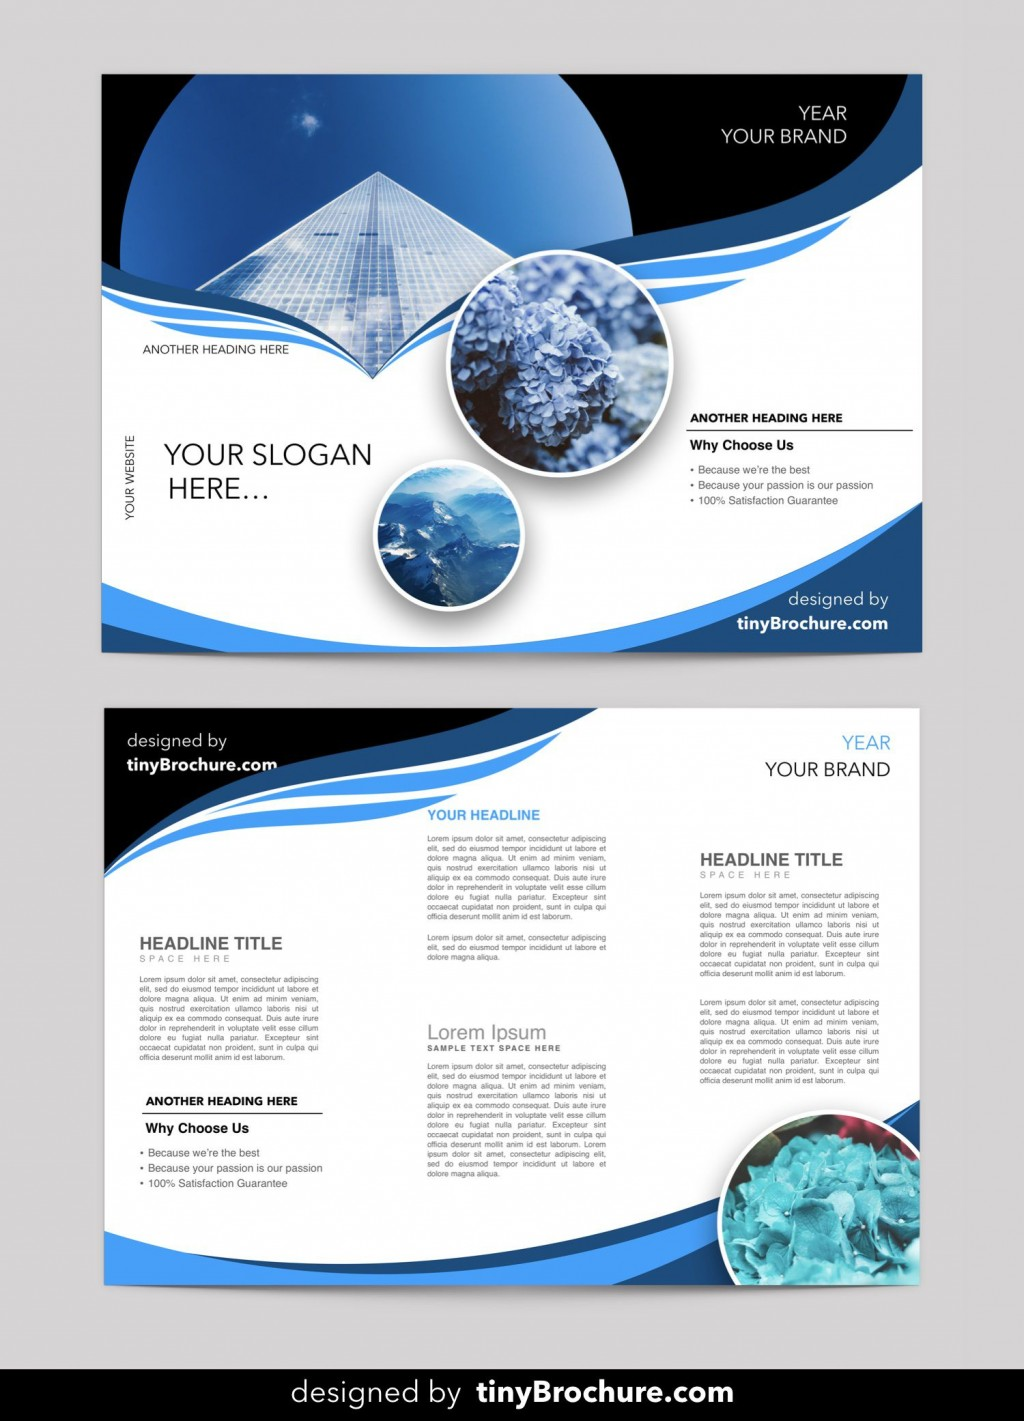 004 Stirring Free Brochure Template Download Image  Psd Tri Fold For Word Corporate BusinesLarge